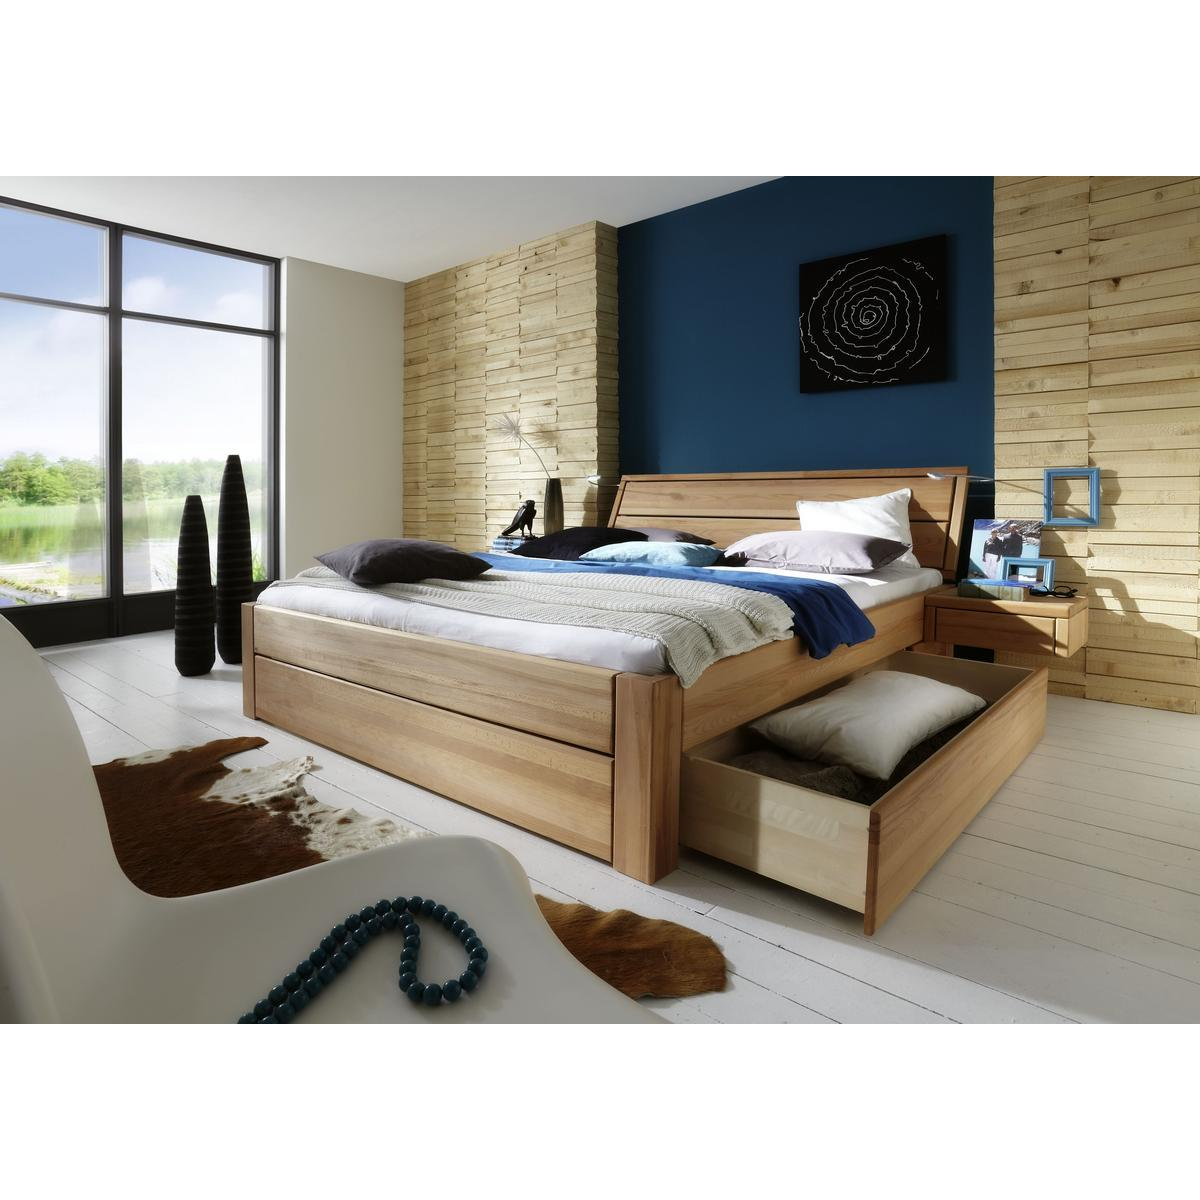 massivholz schubkastenbett 90x200 easy sleep kernbuche massiv ge lt 9409 93 52 87. Black Bedroom Furniture Sets. Home Design Ideas